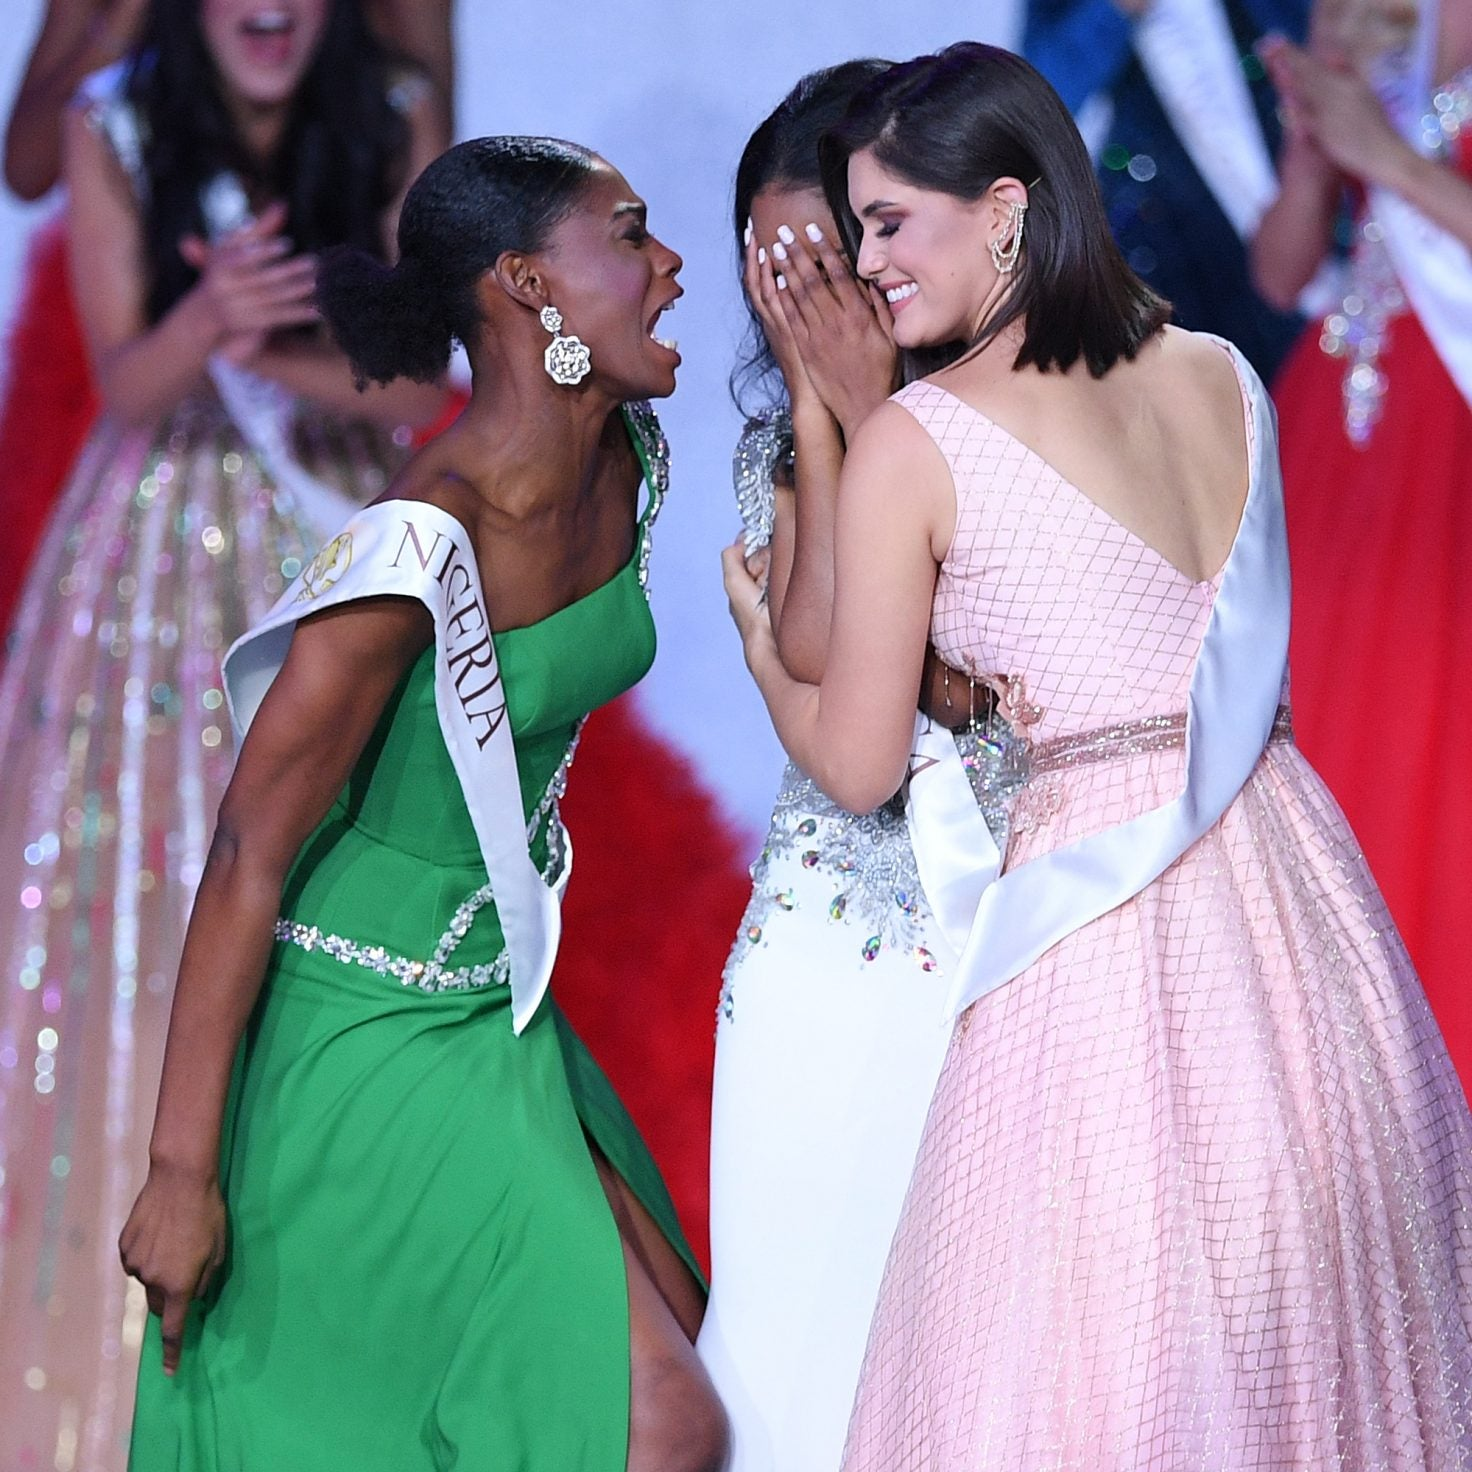 Miss Nigeria's Praise Dance For Fellow Contestant's Win Is Friendship Goals